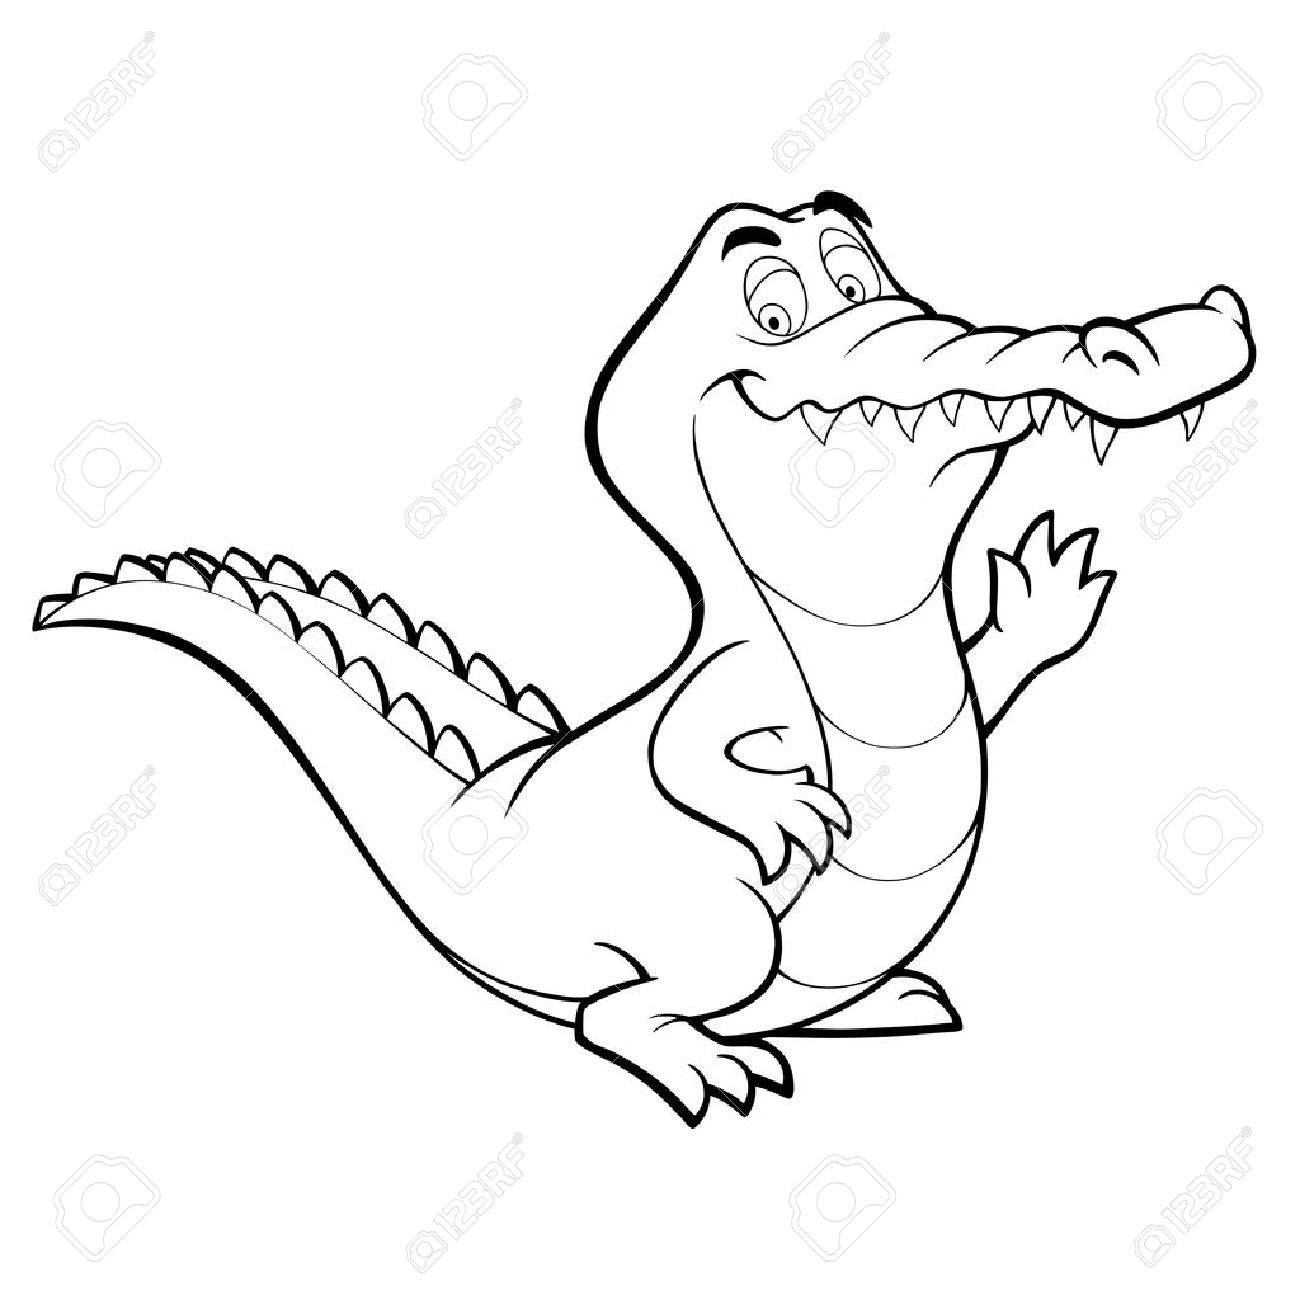 outline picture of crocodile baby crocodile drawing at getdrawings free download crocodile picture of outline